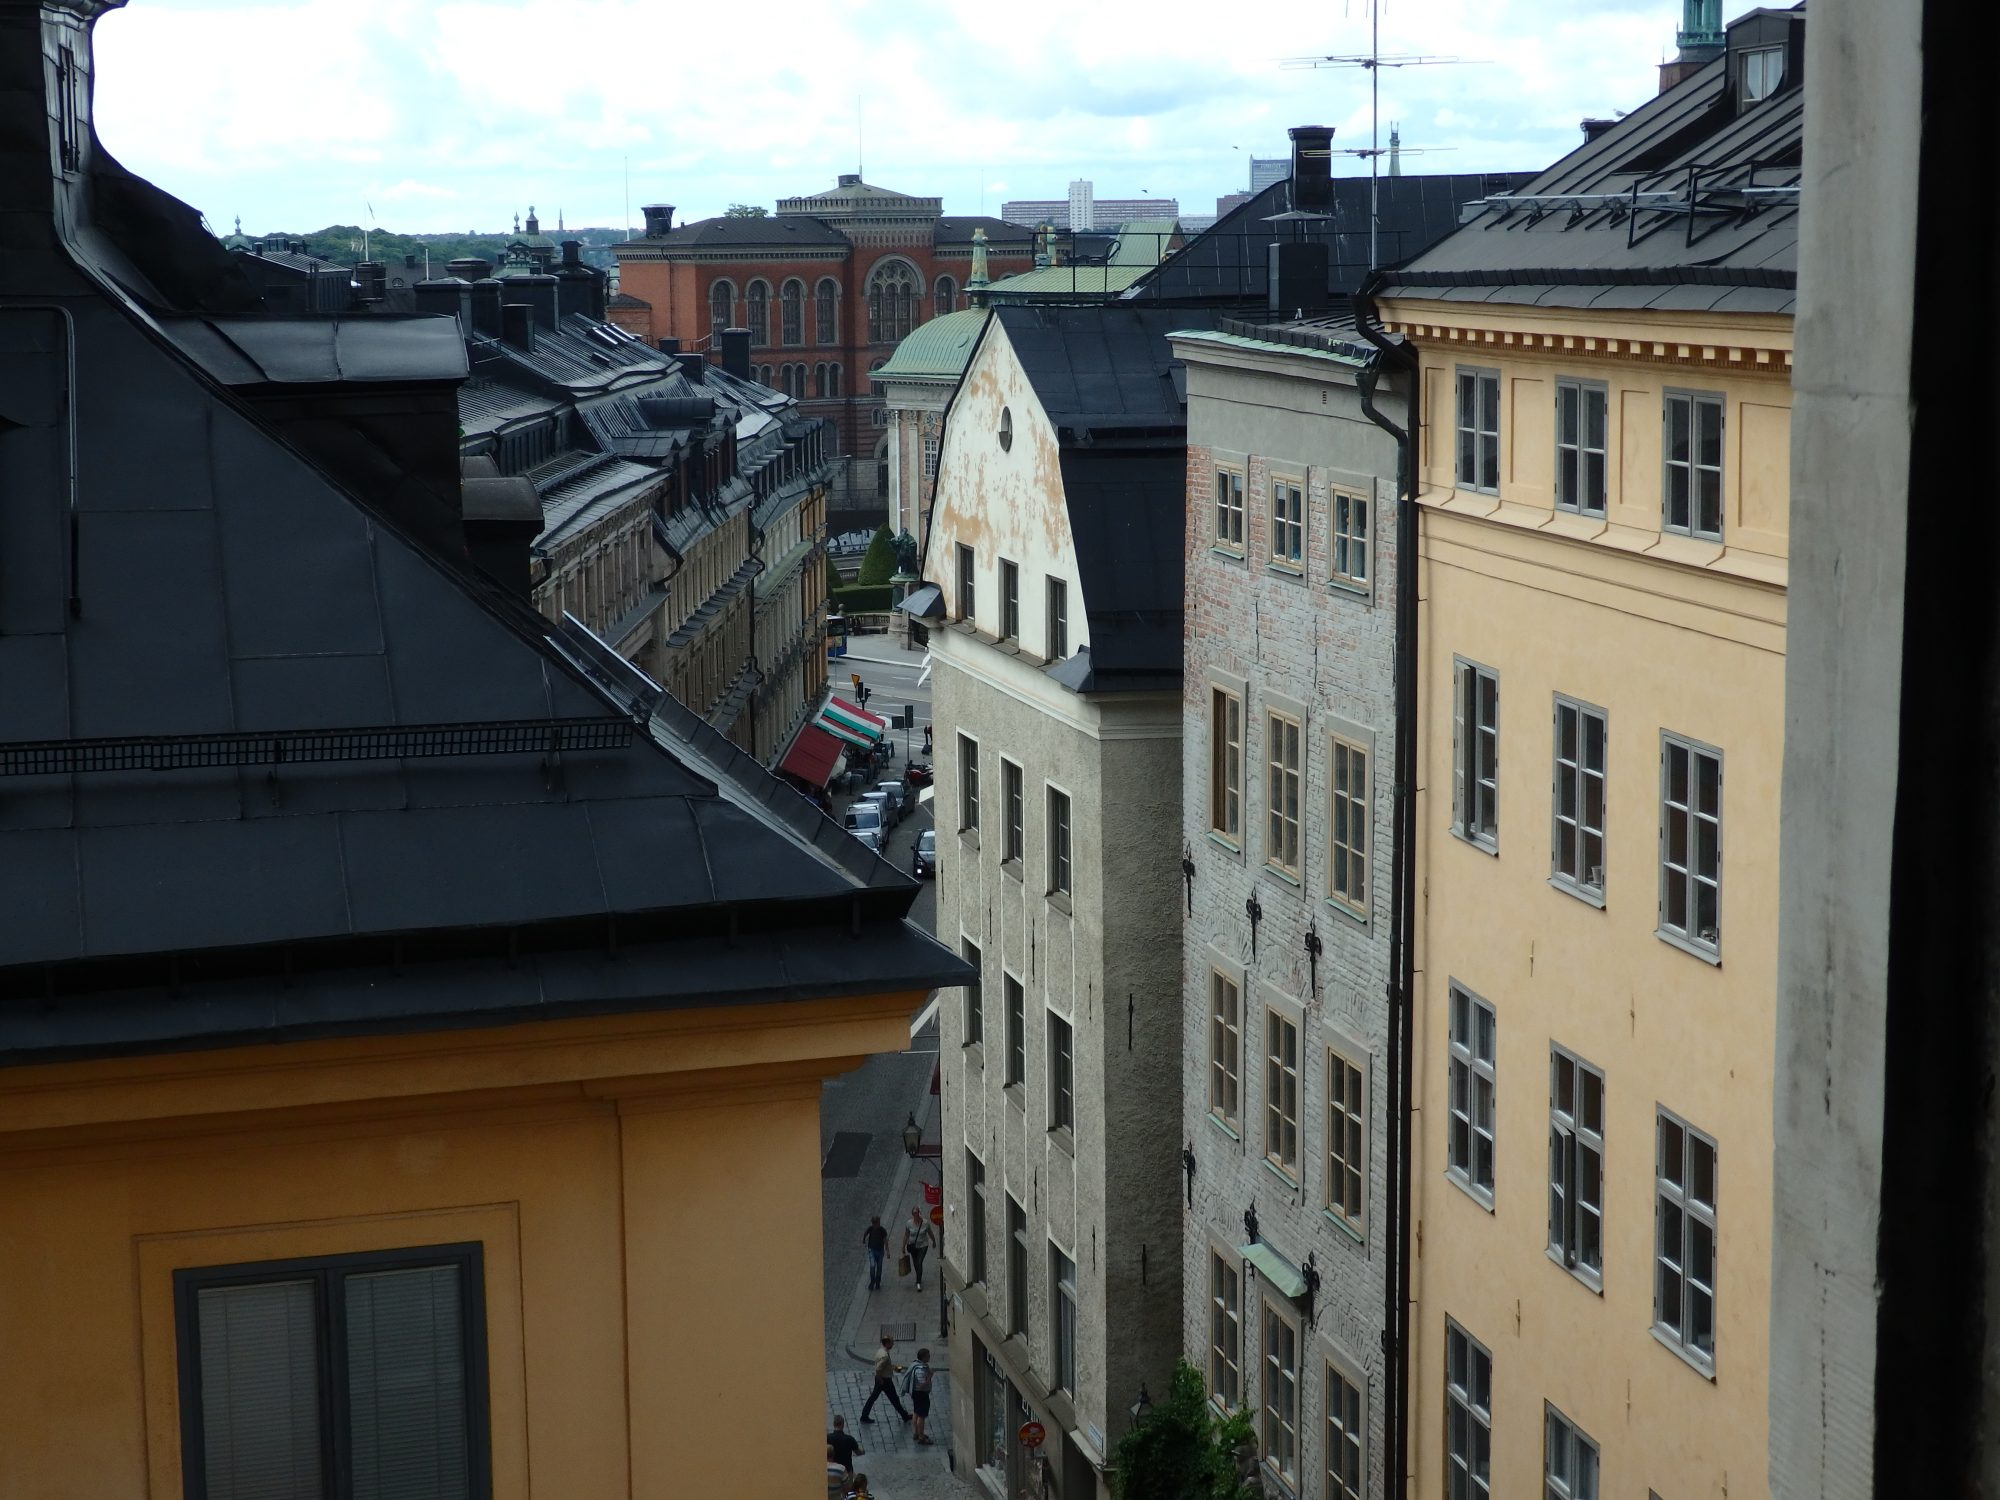 The view from partway up Storkyrkan tower, through a door with a handle on the outside. Stockholm.